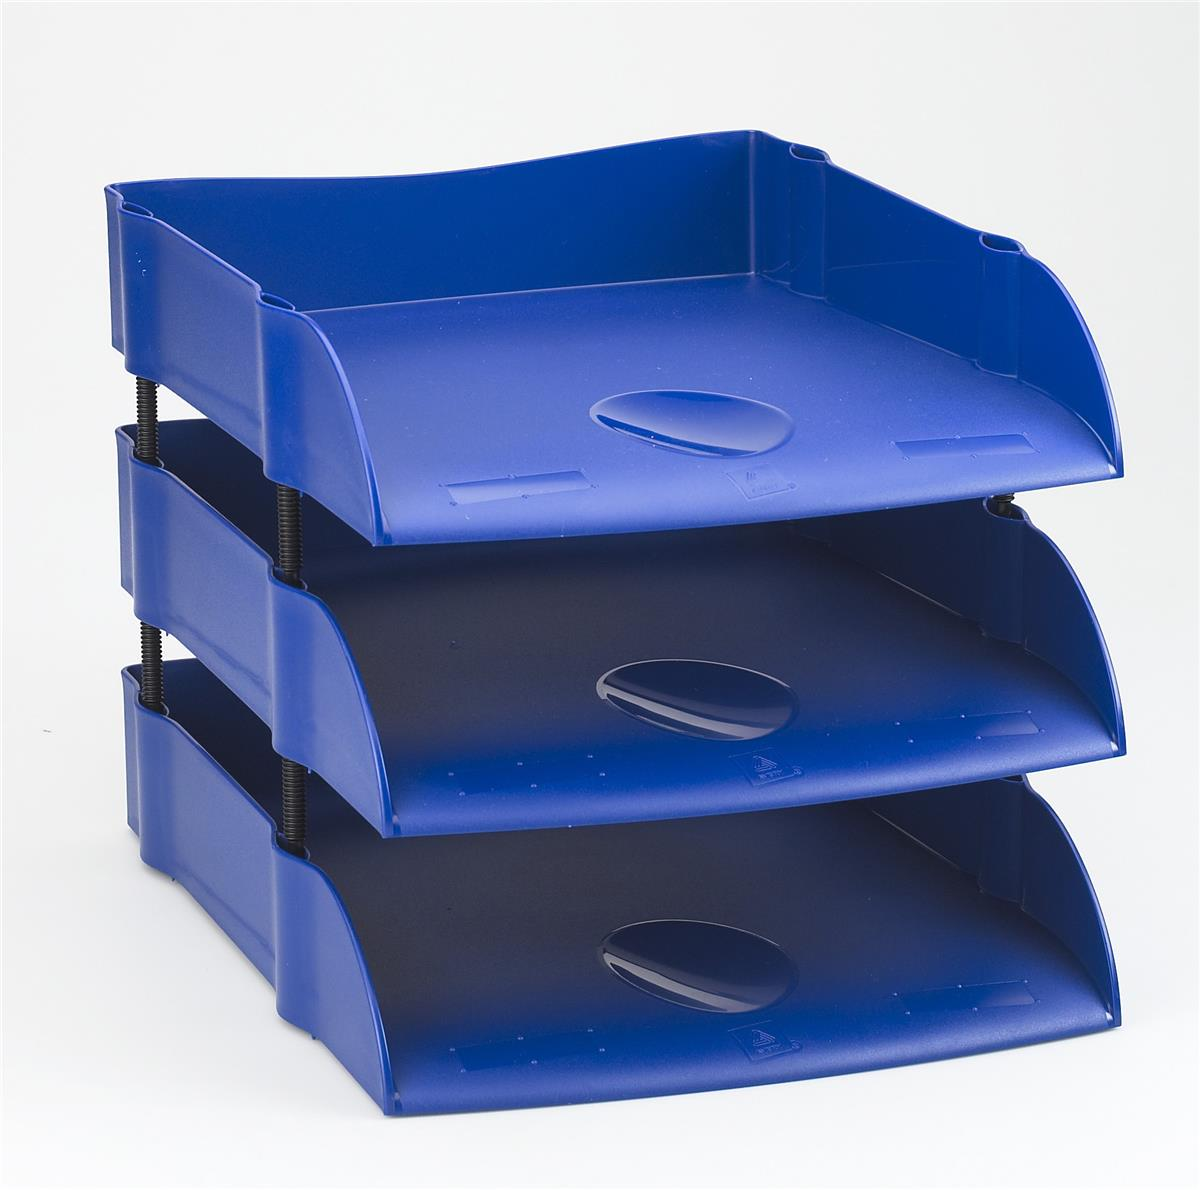 Image for Avery DTR Letter Tray Self-stacking W270xD360xH60mm Blue Ref DR100BLU